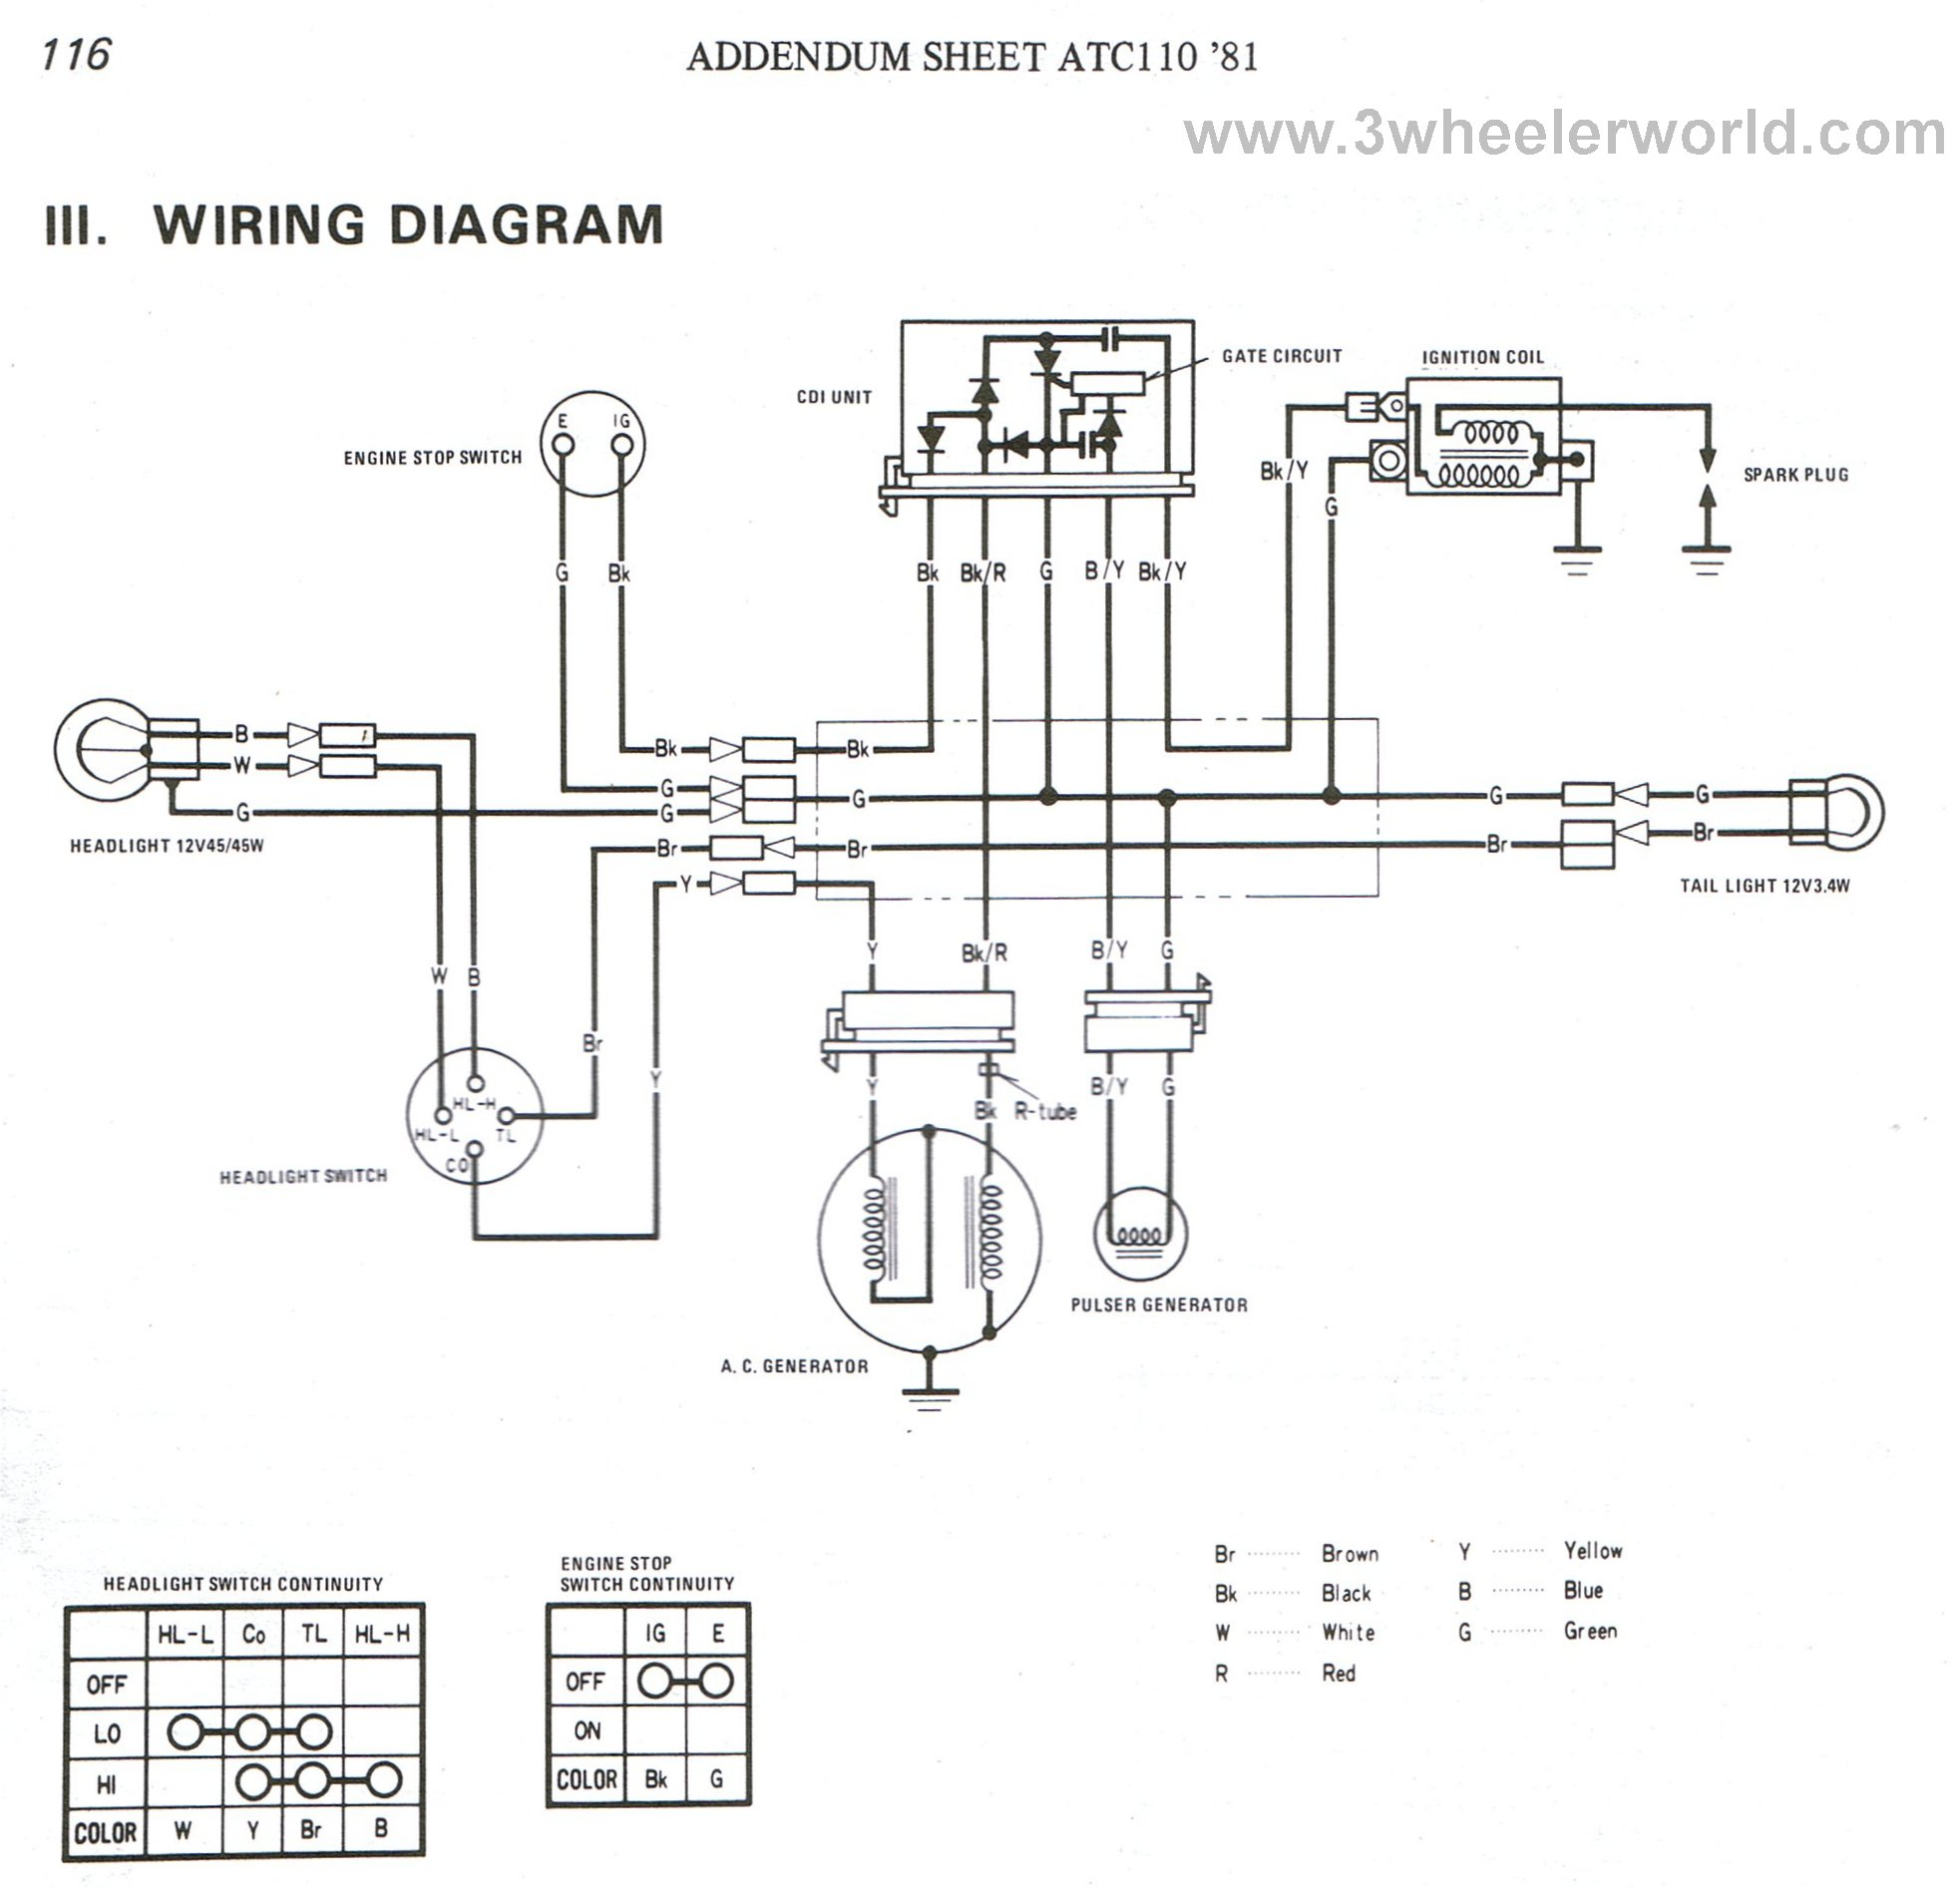 chinese quad bike wiring diagram wiring diagrams and schematics chinese quad bike wiring diagram diagrams base